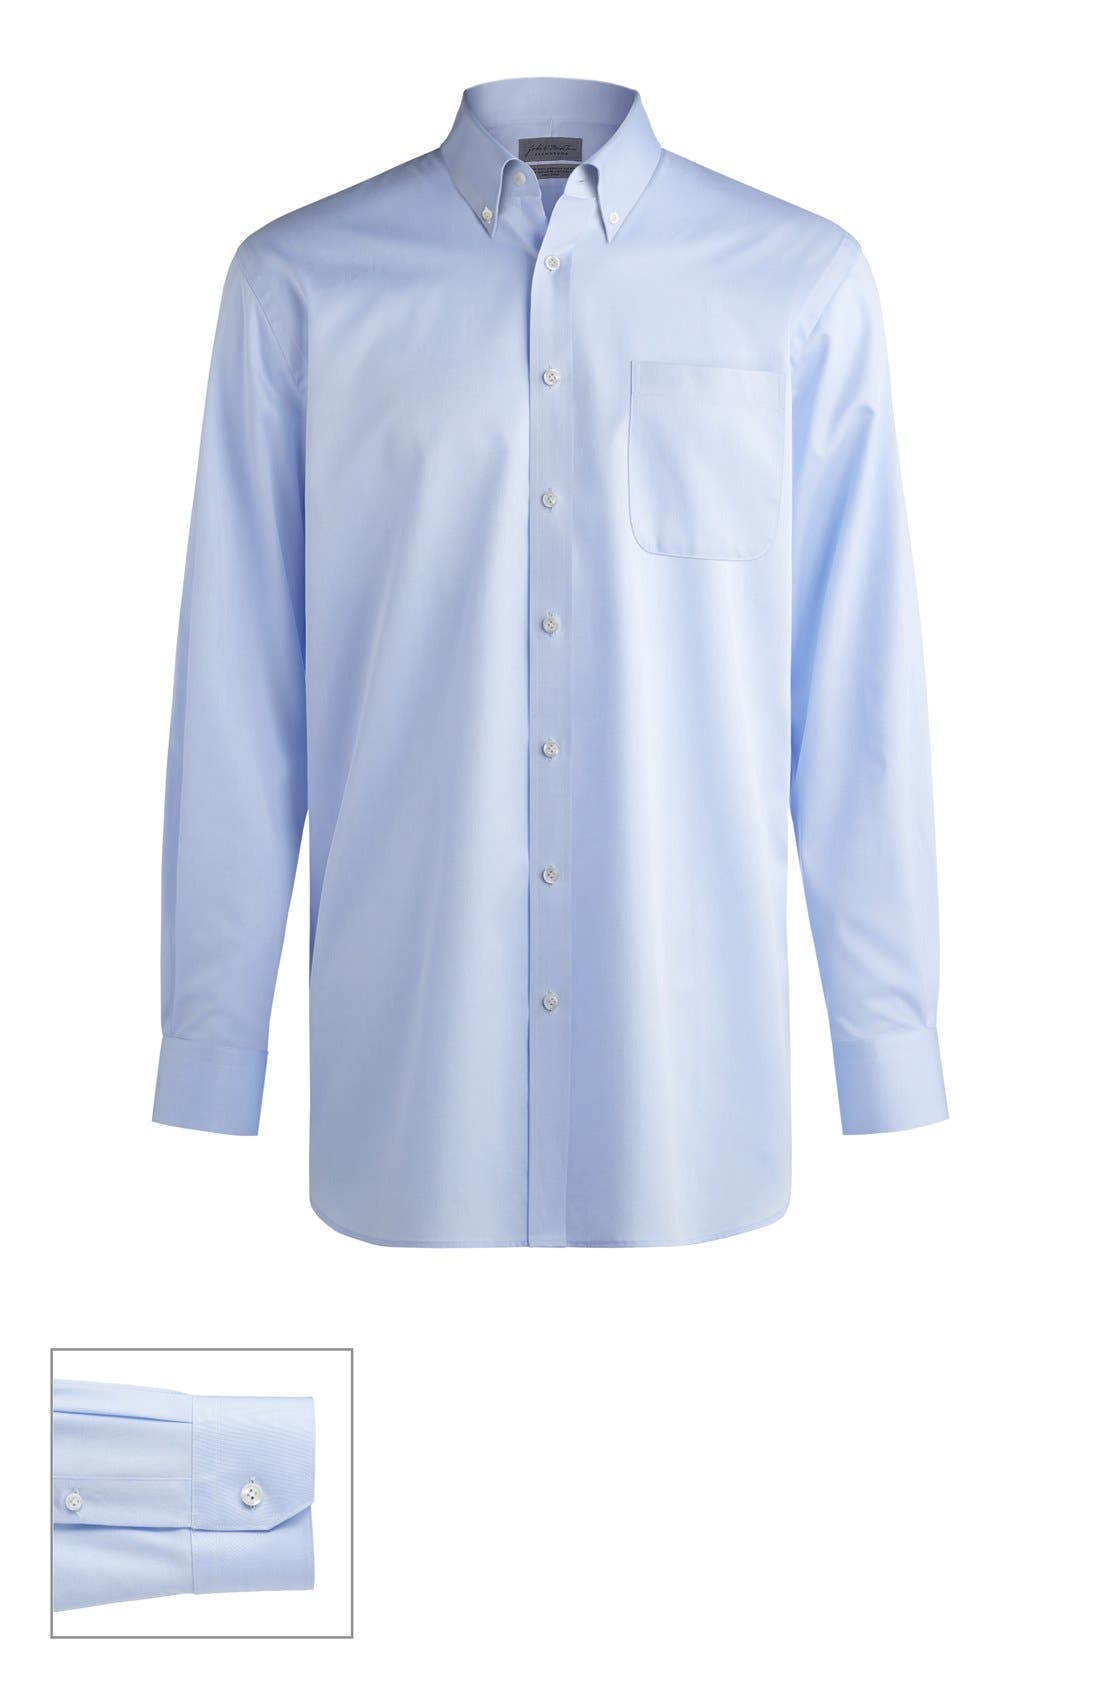 John W. Nordstrom® Made to Measure Traditional Fit Button Down Collar Solid Dress Shirt